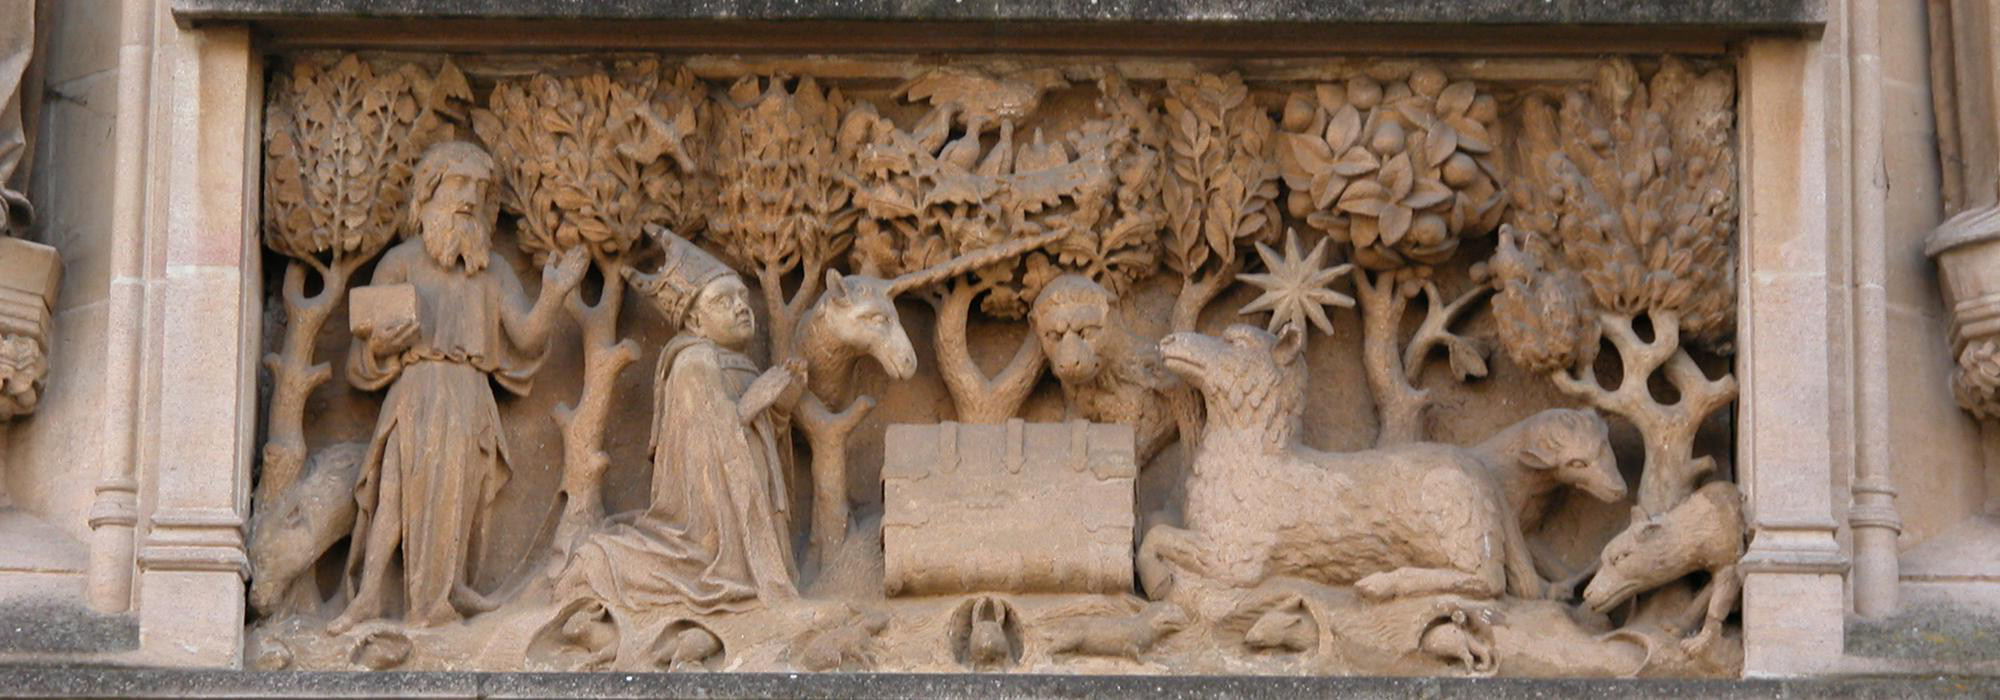 Central stone panel above the entrance to the College; it represents a book with the Agnus Dei on one side and St John the Baptist and the founder on the other side set in a l和scape background with various animals.